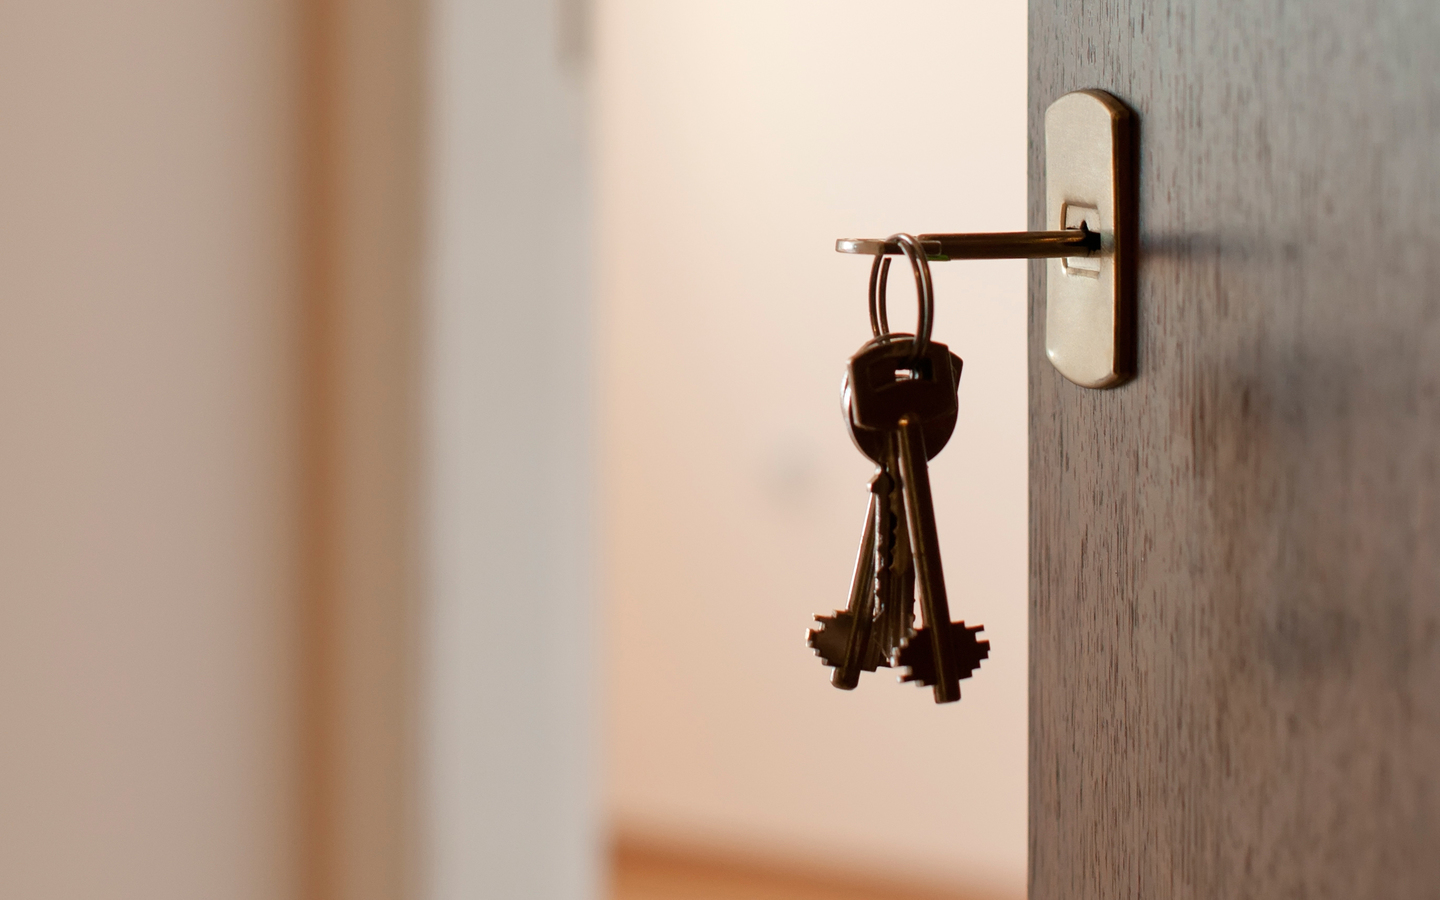 11 most important points to look before geting possession of your flat.